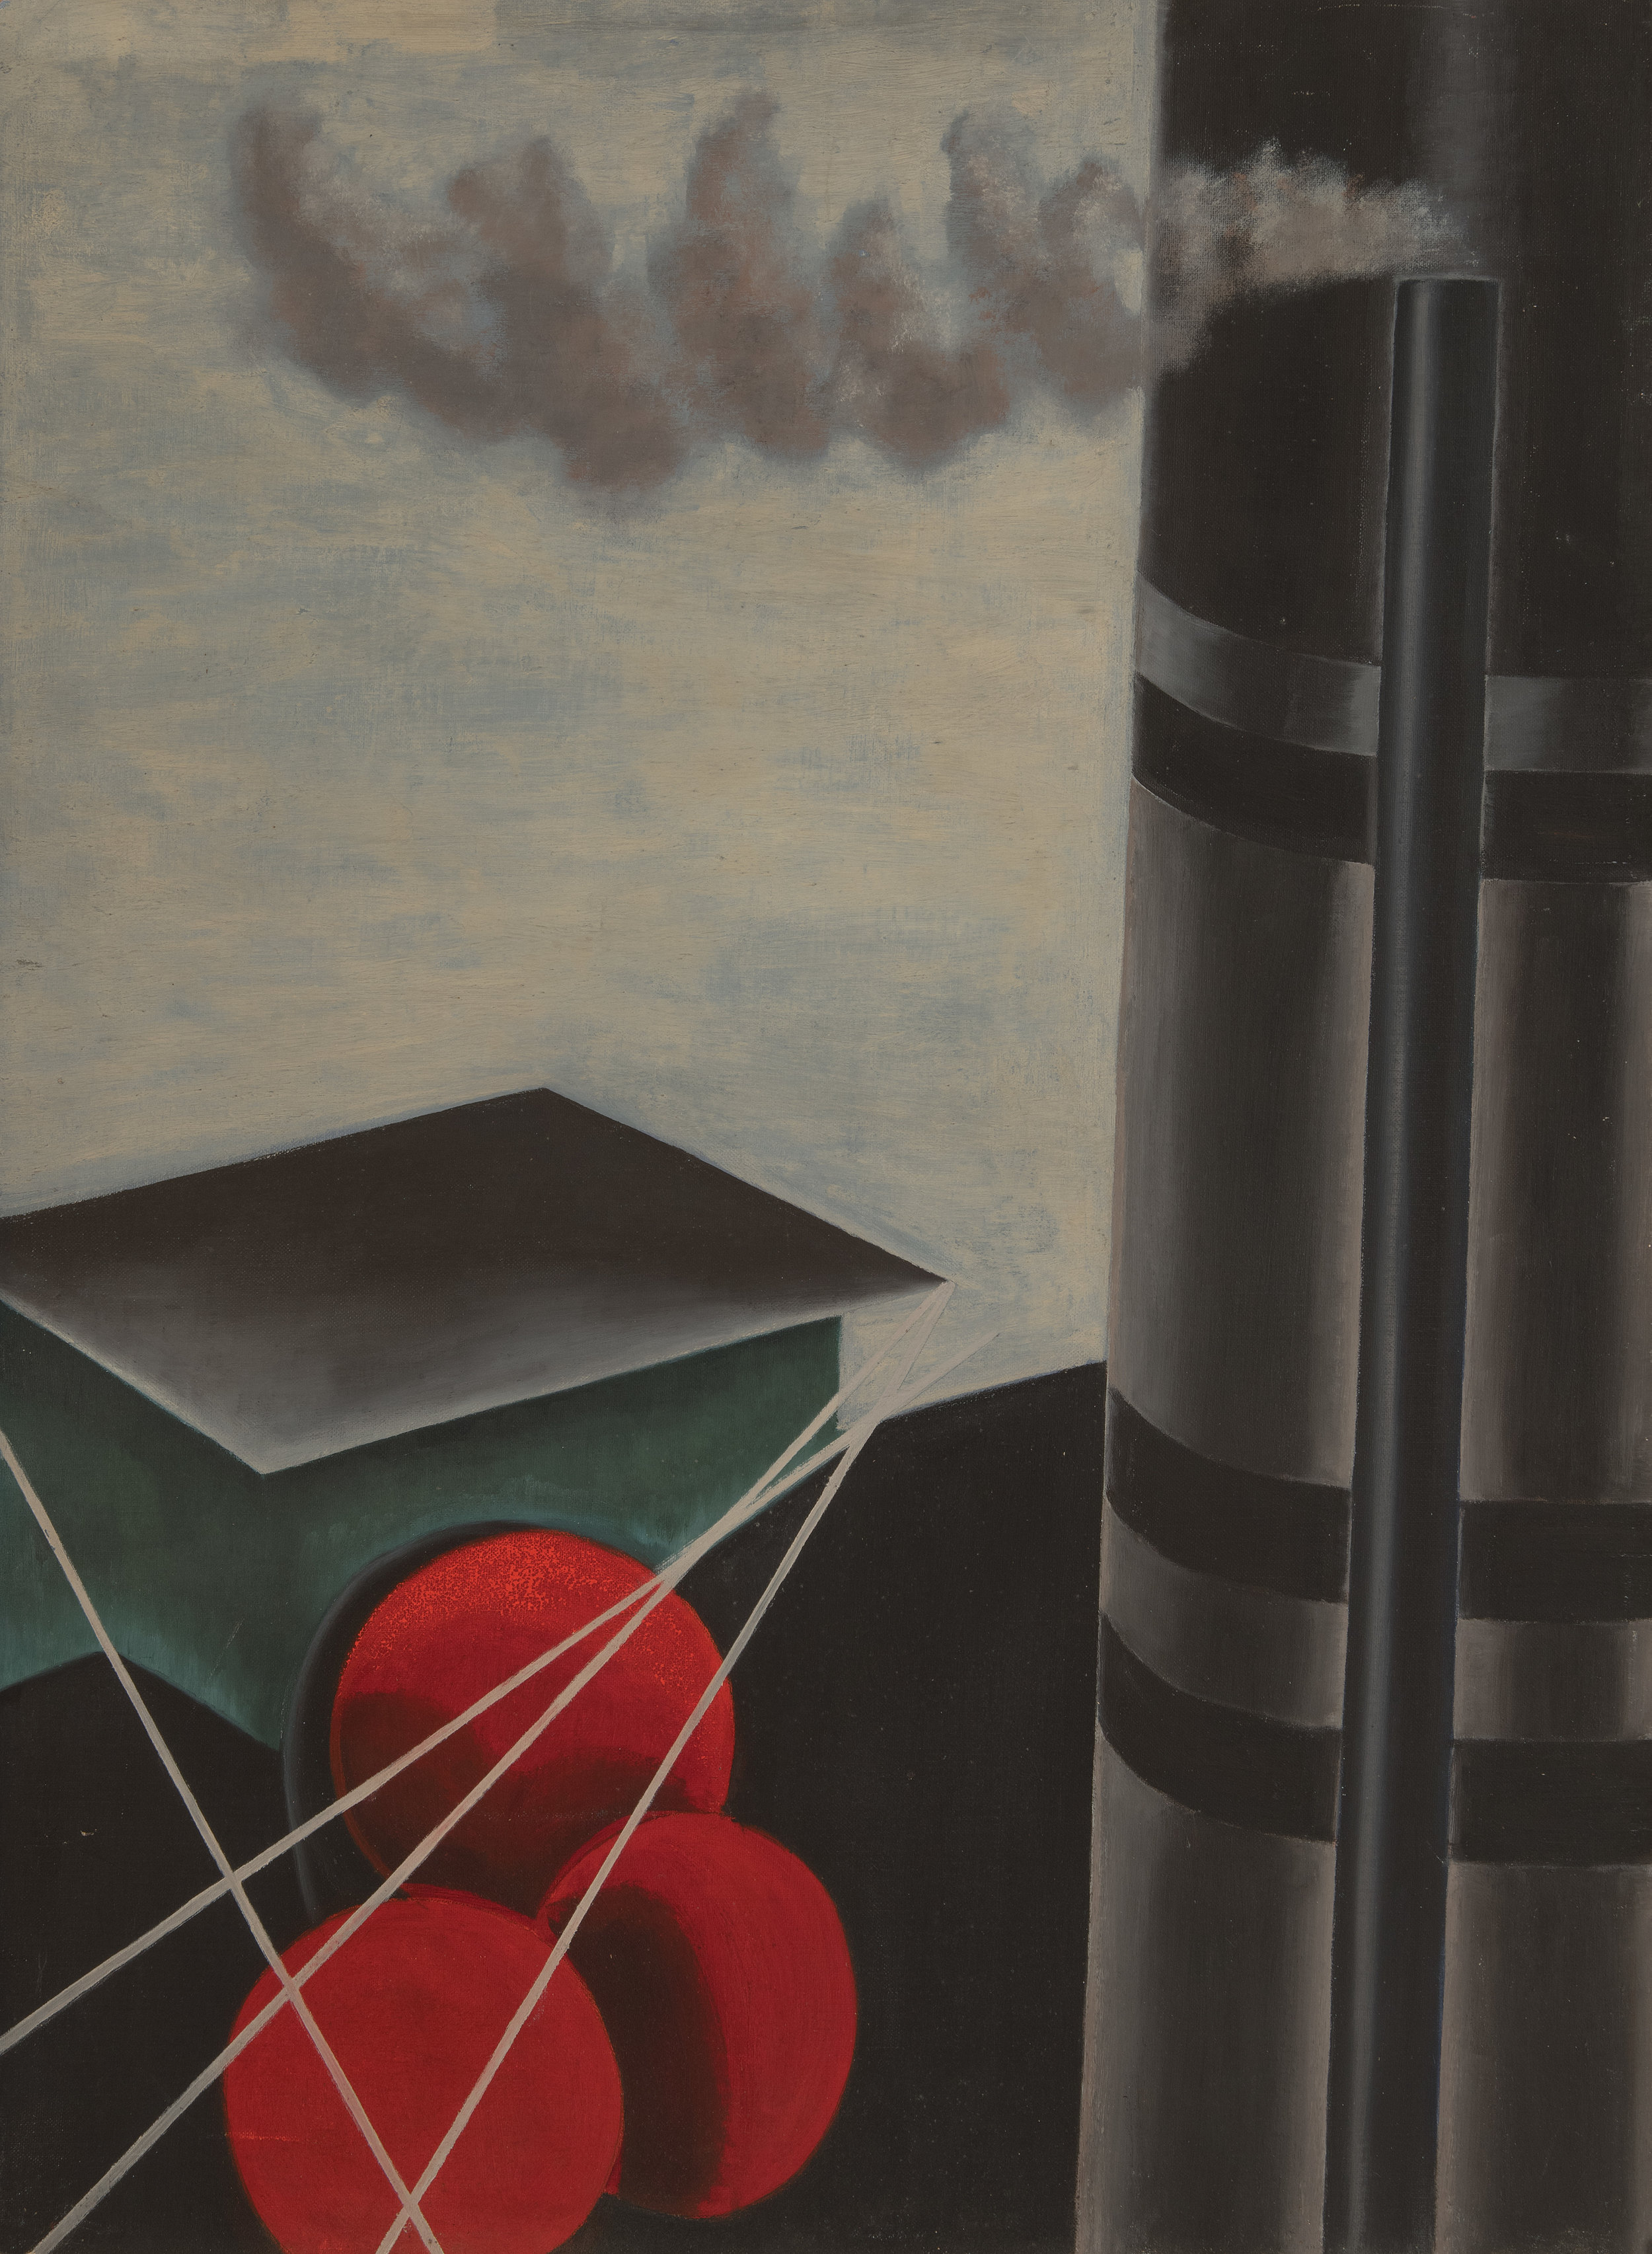 Painting of abstract industrial scene with a black and grey smokestack, three red circles, and a green and grey box